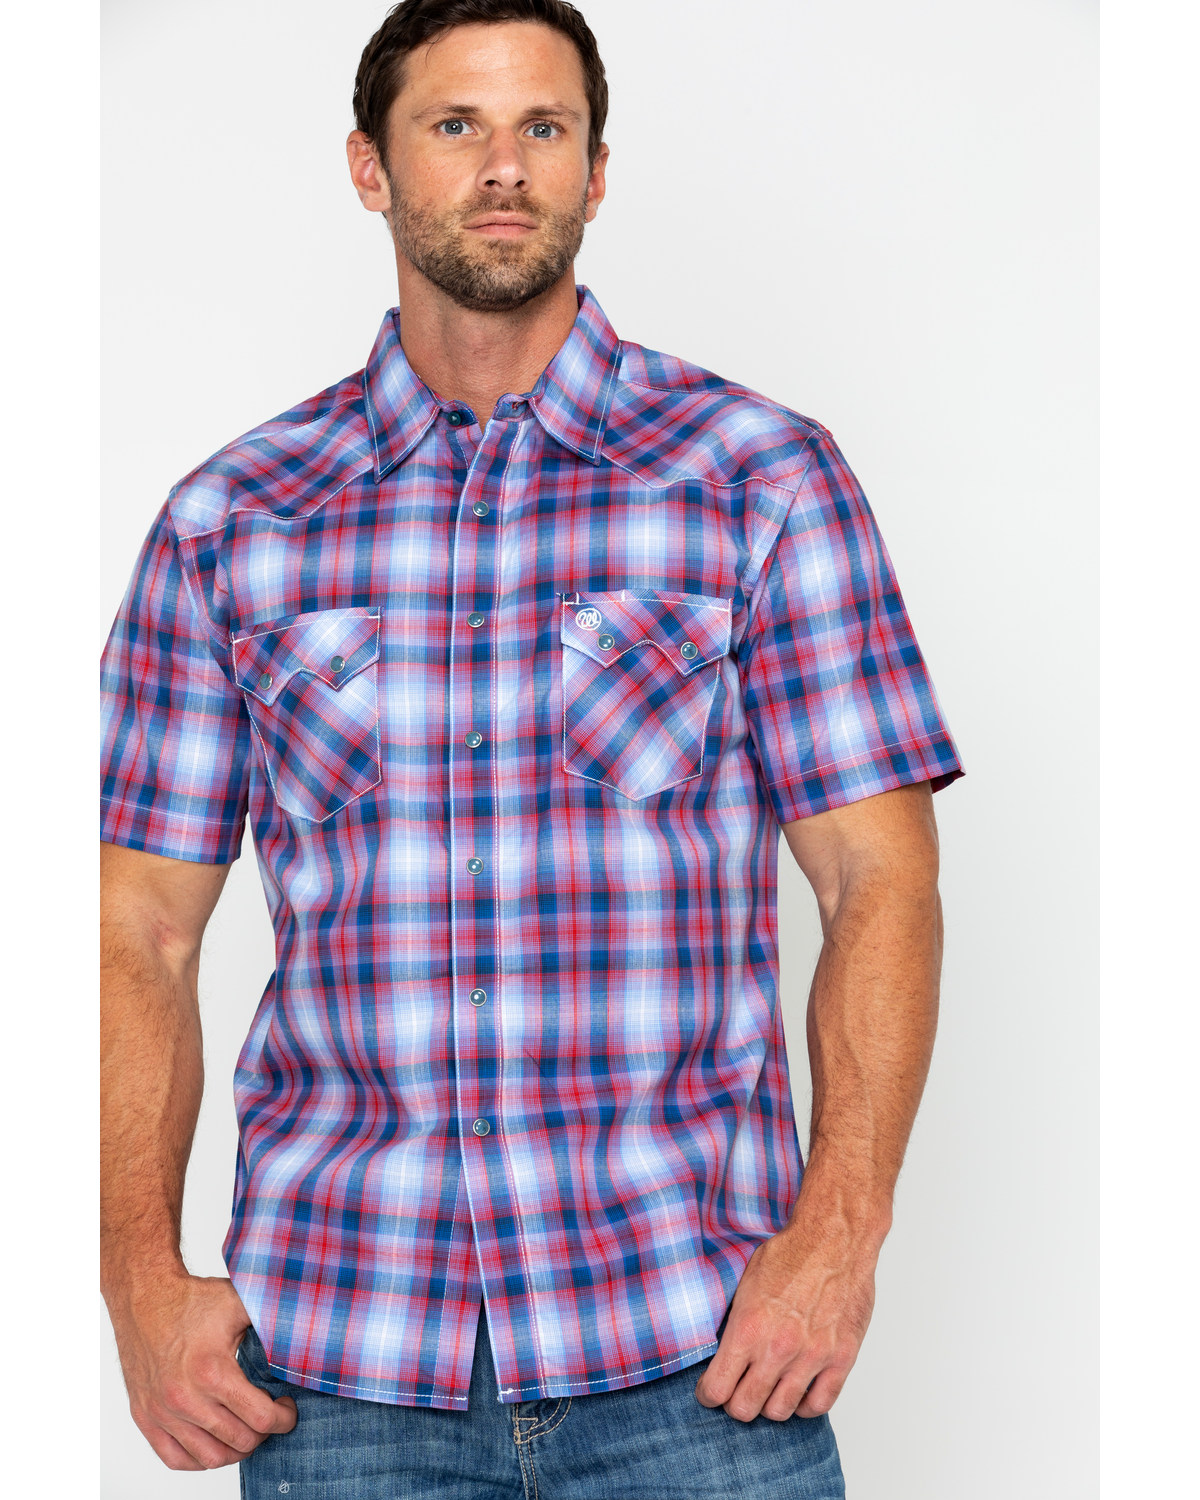 346baf0f Zoomed Image Wrangler Retro Men's Med Plaid Short Sleeve Western Shirt ,  Red, ...